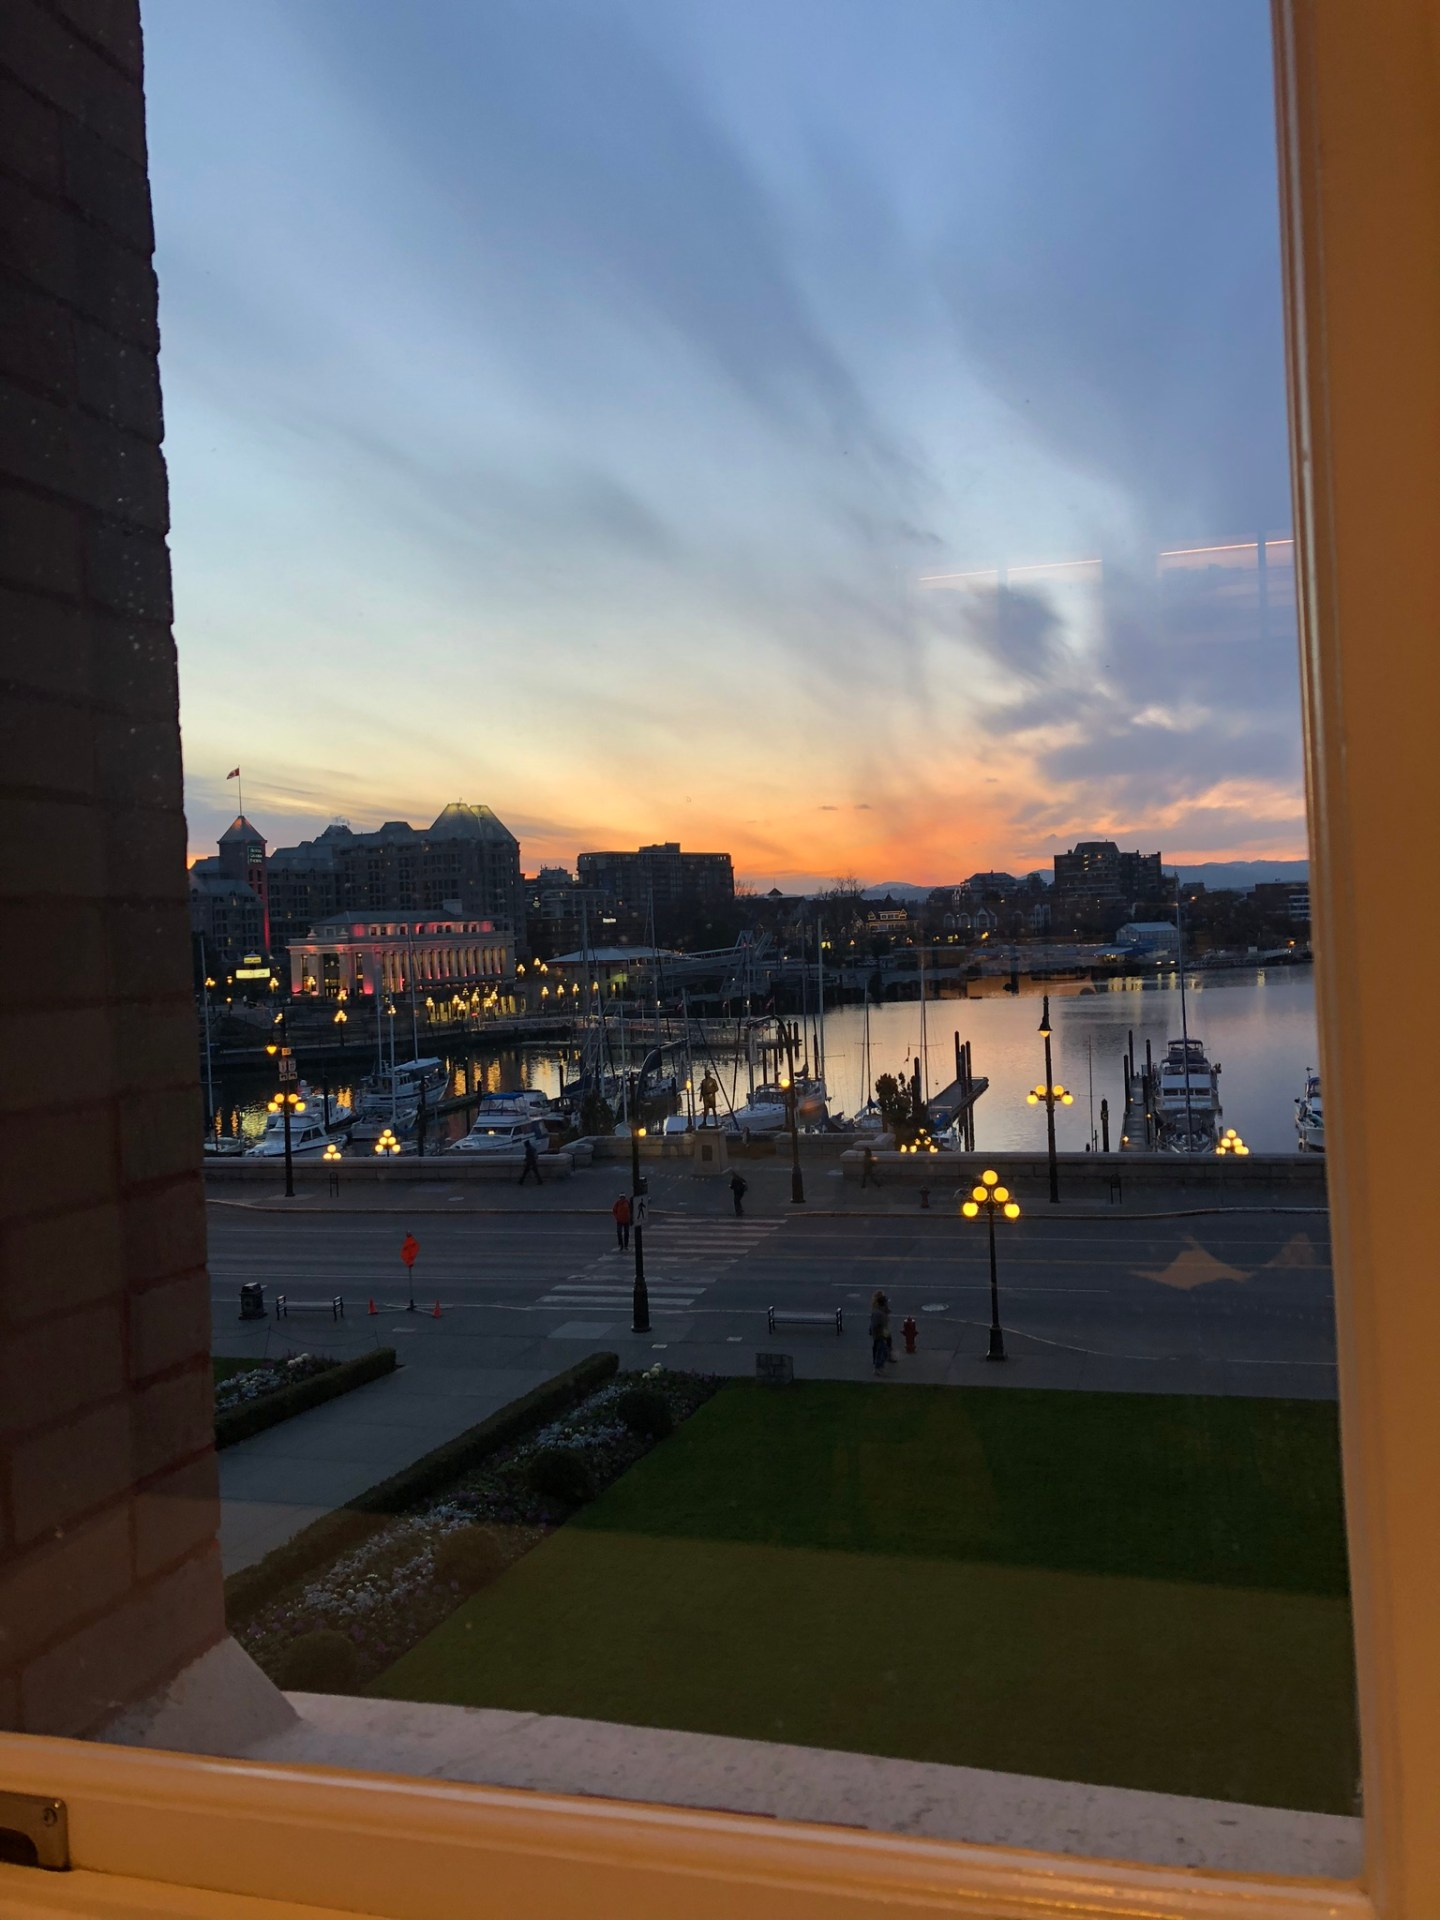 Sunset across Victoria harbour from the Fairmont Empress